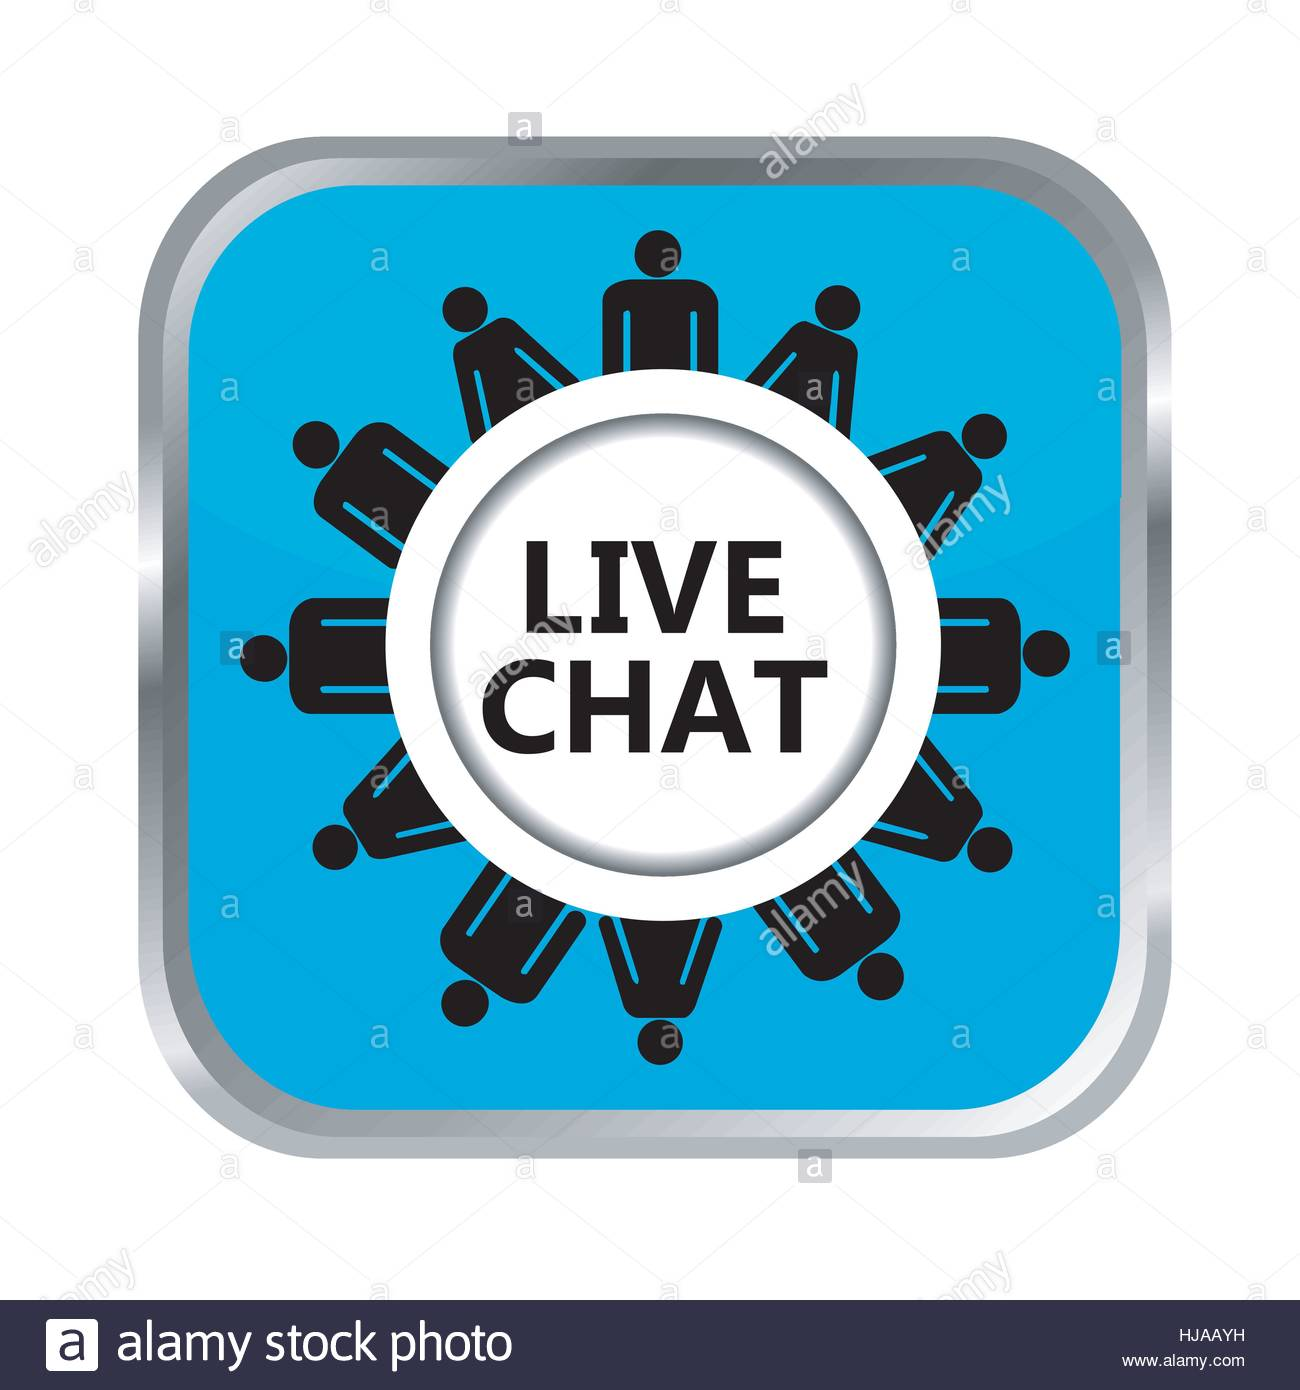 www person com live chat